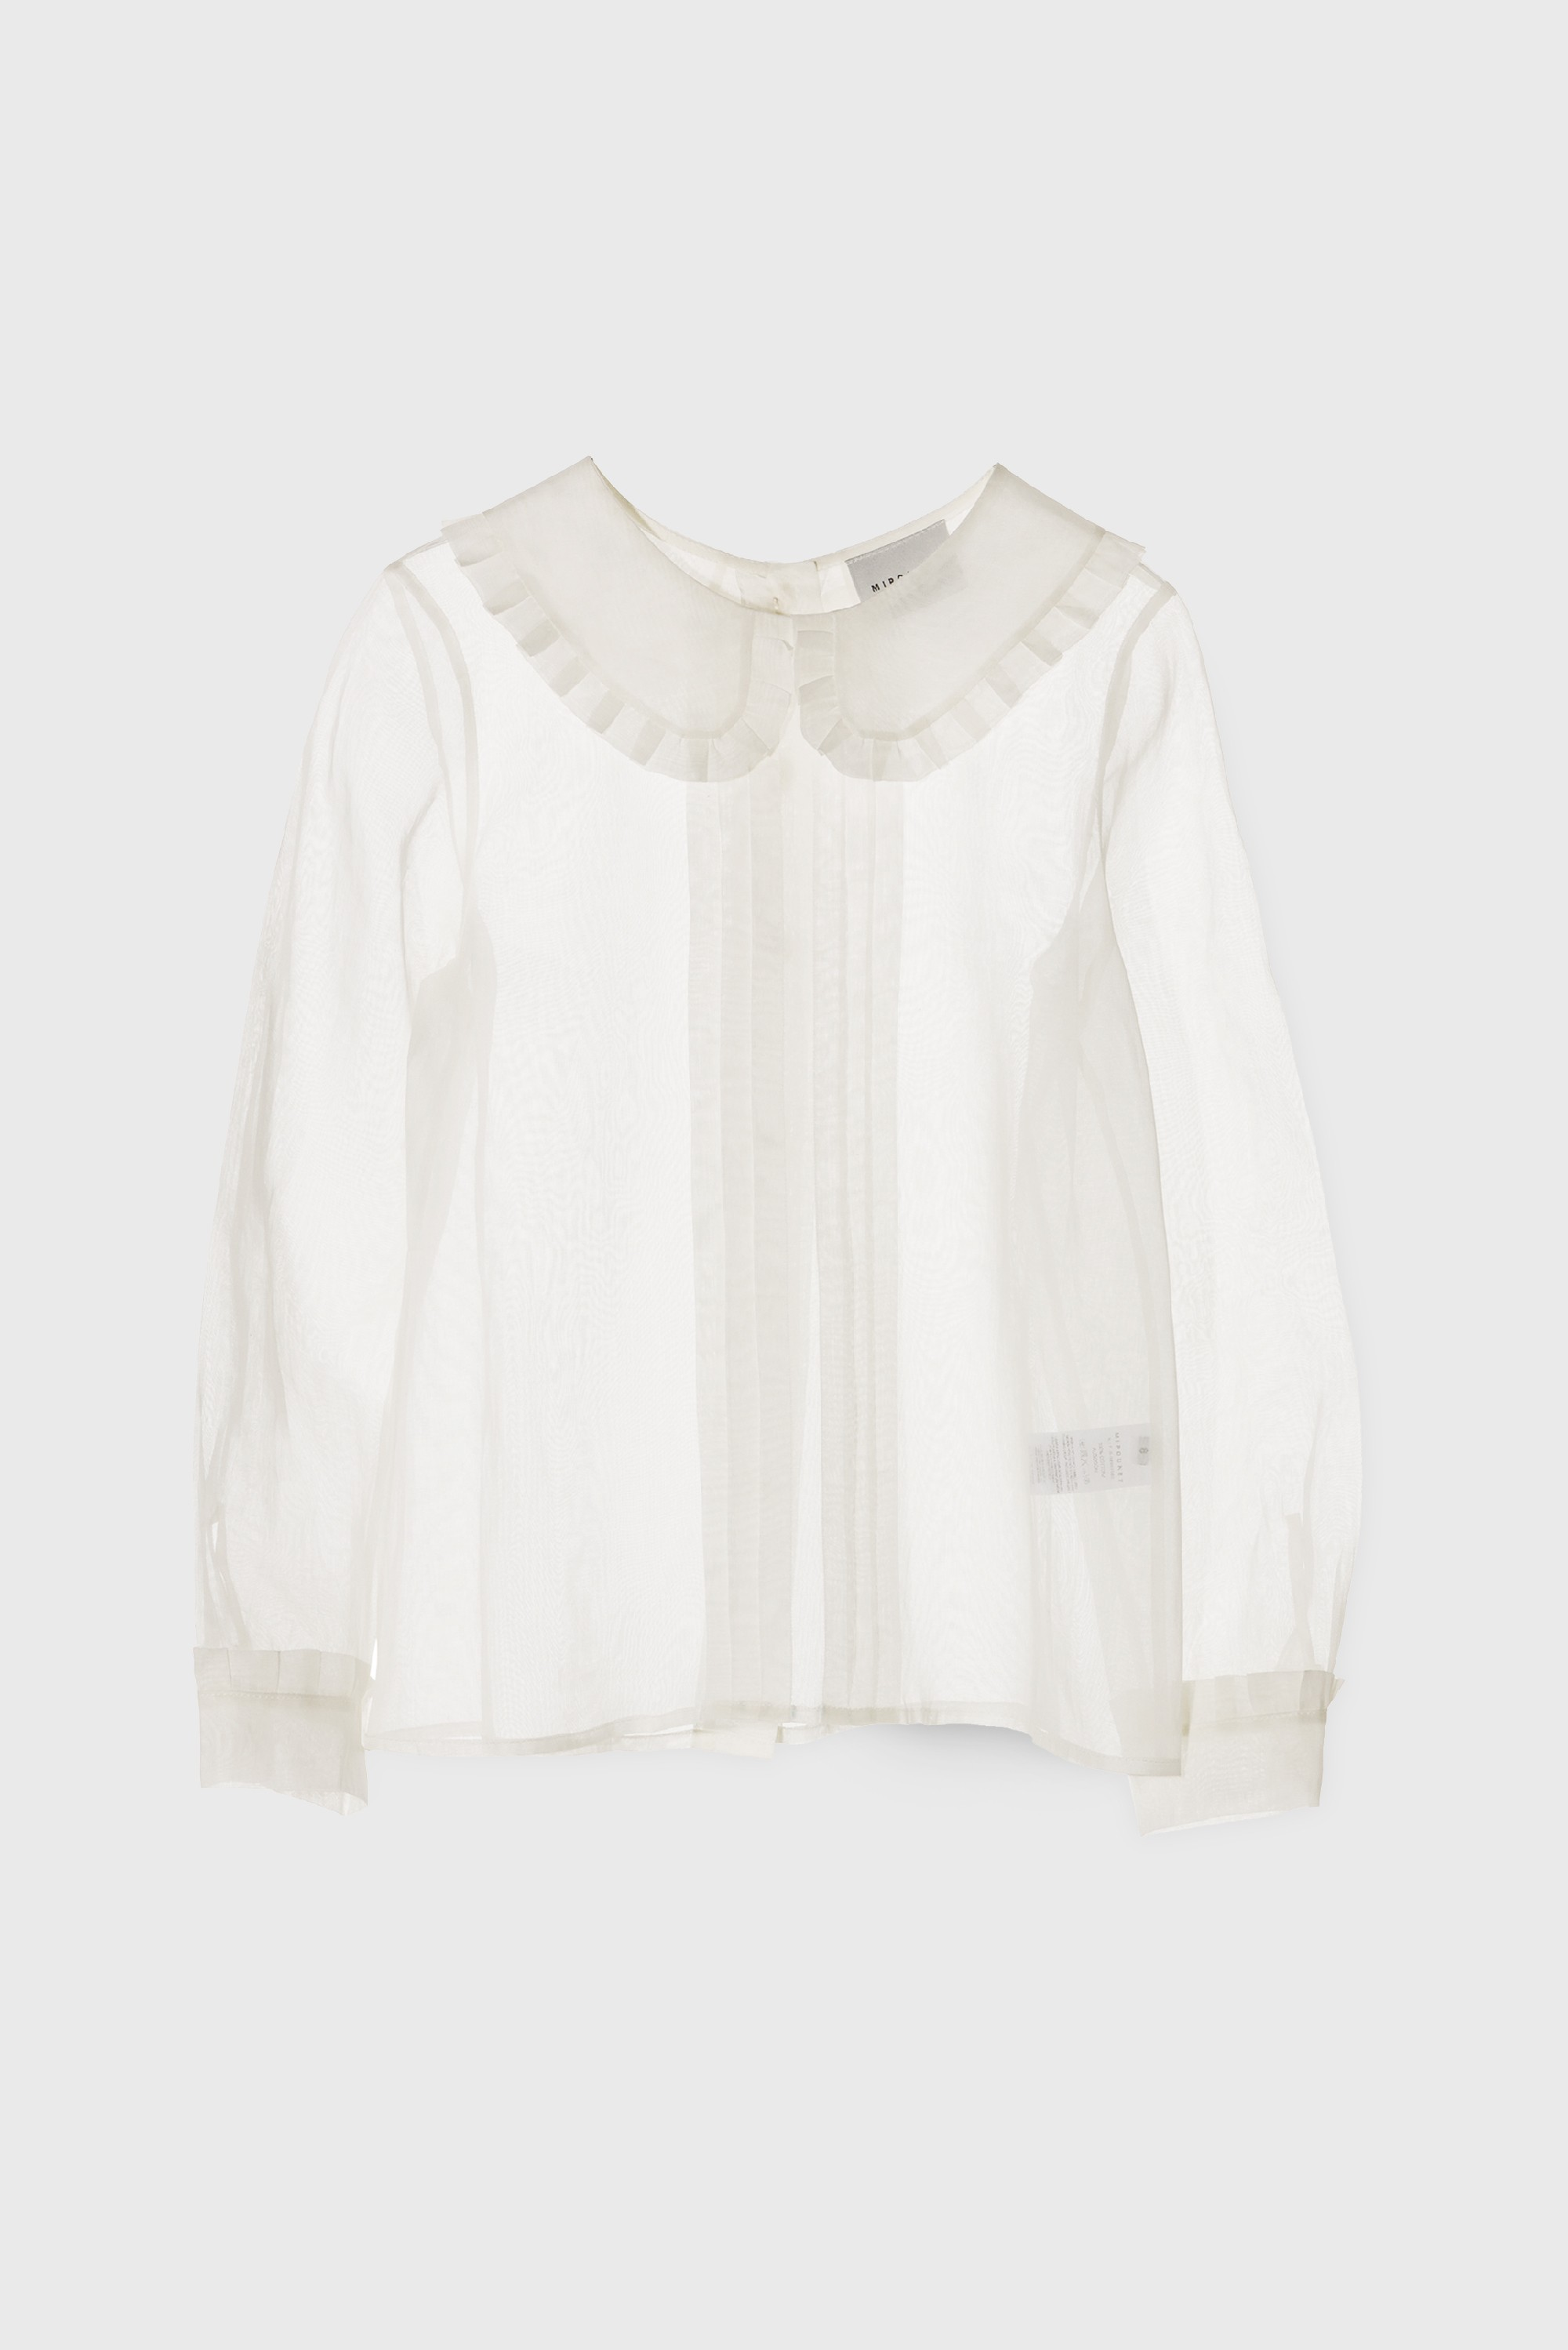 COTTON WHITE ORGANZA COLLARED BLOUSE